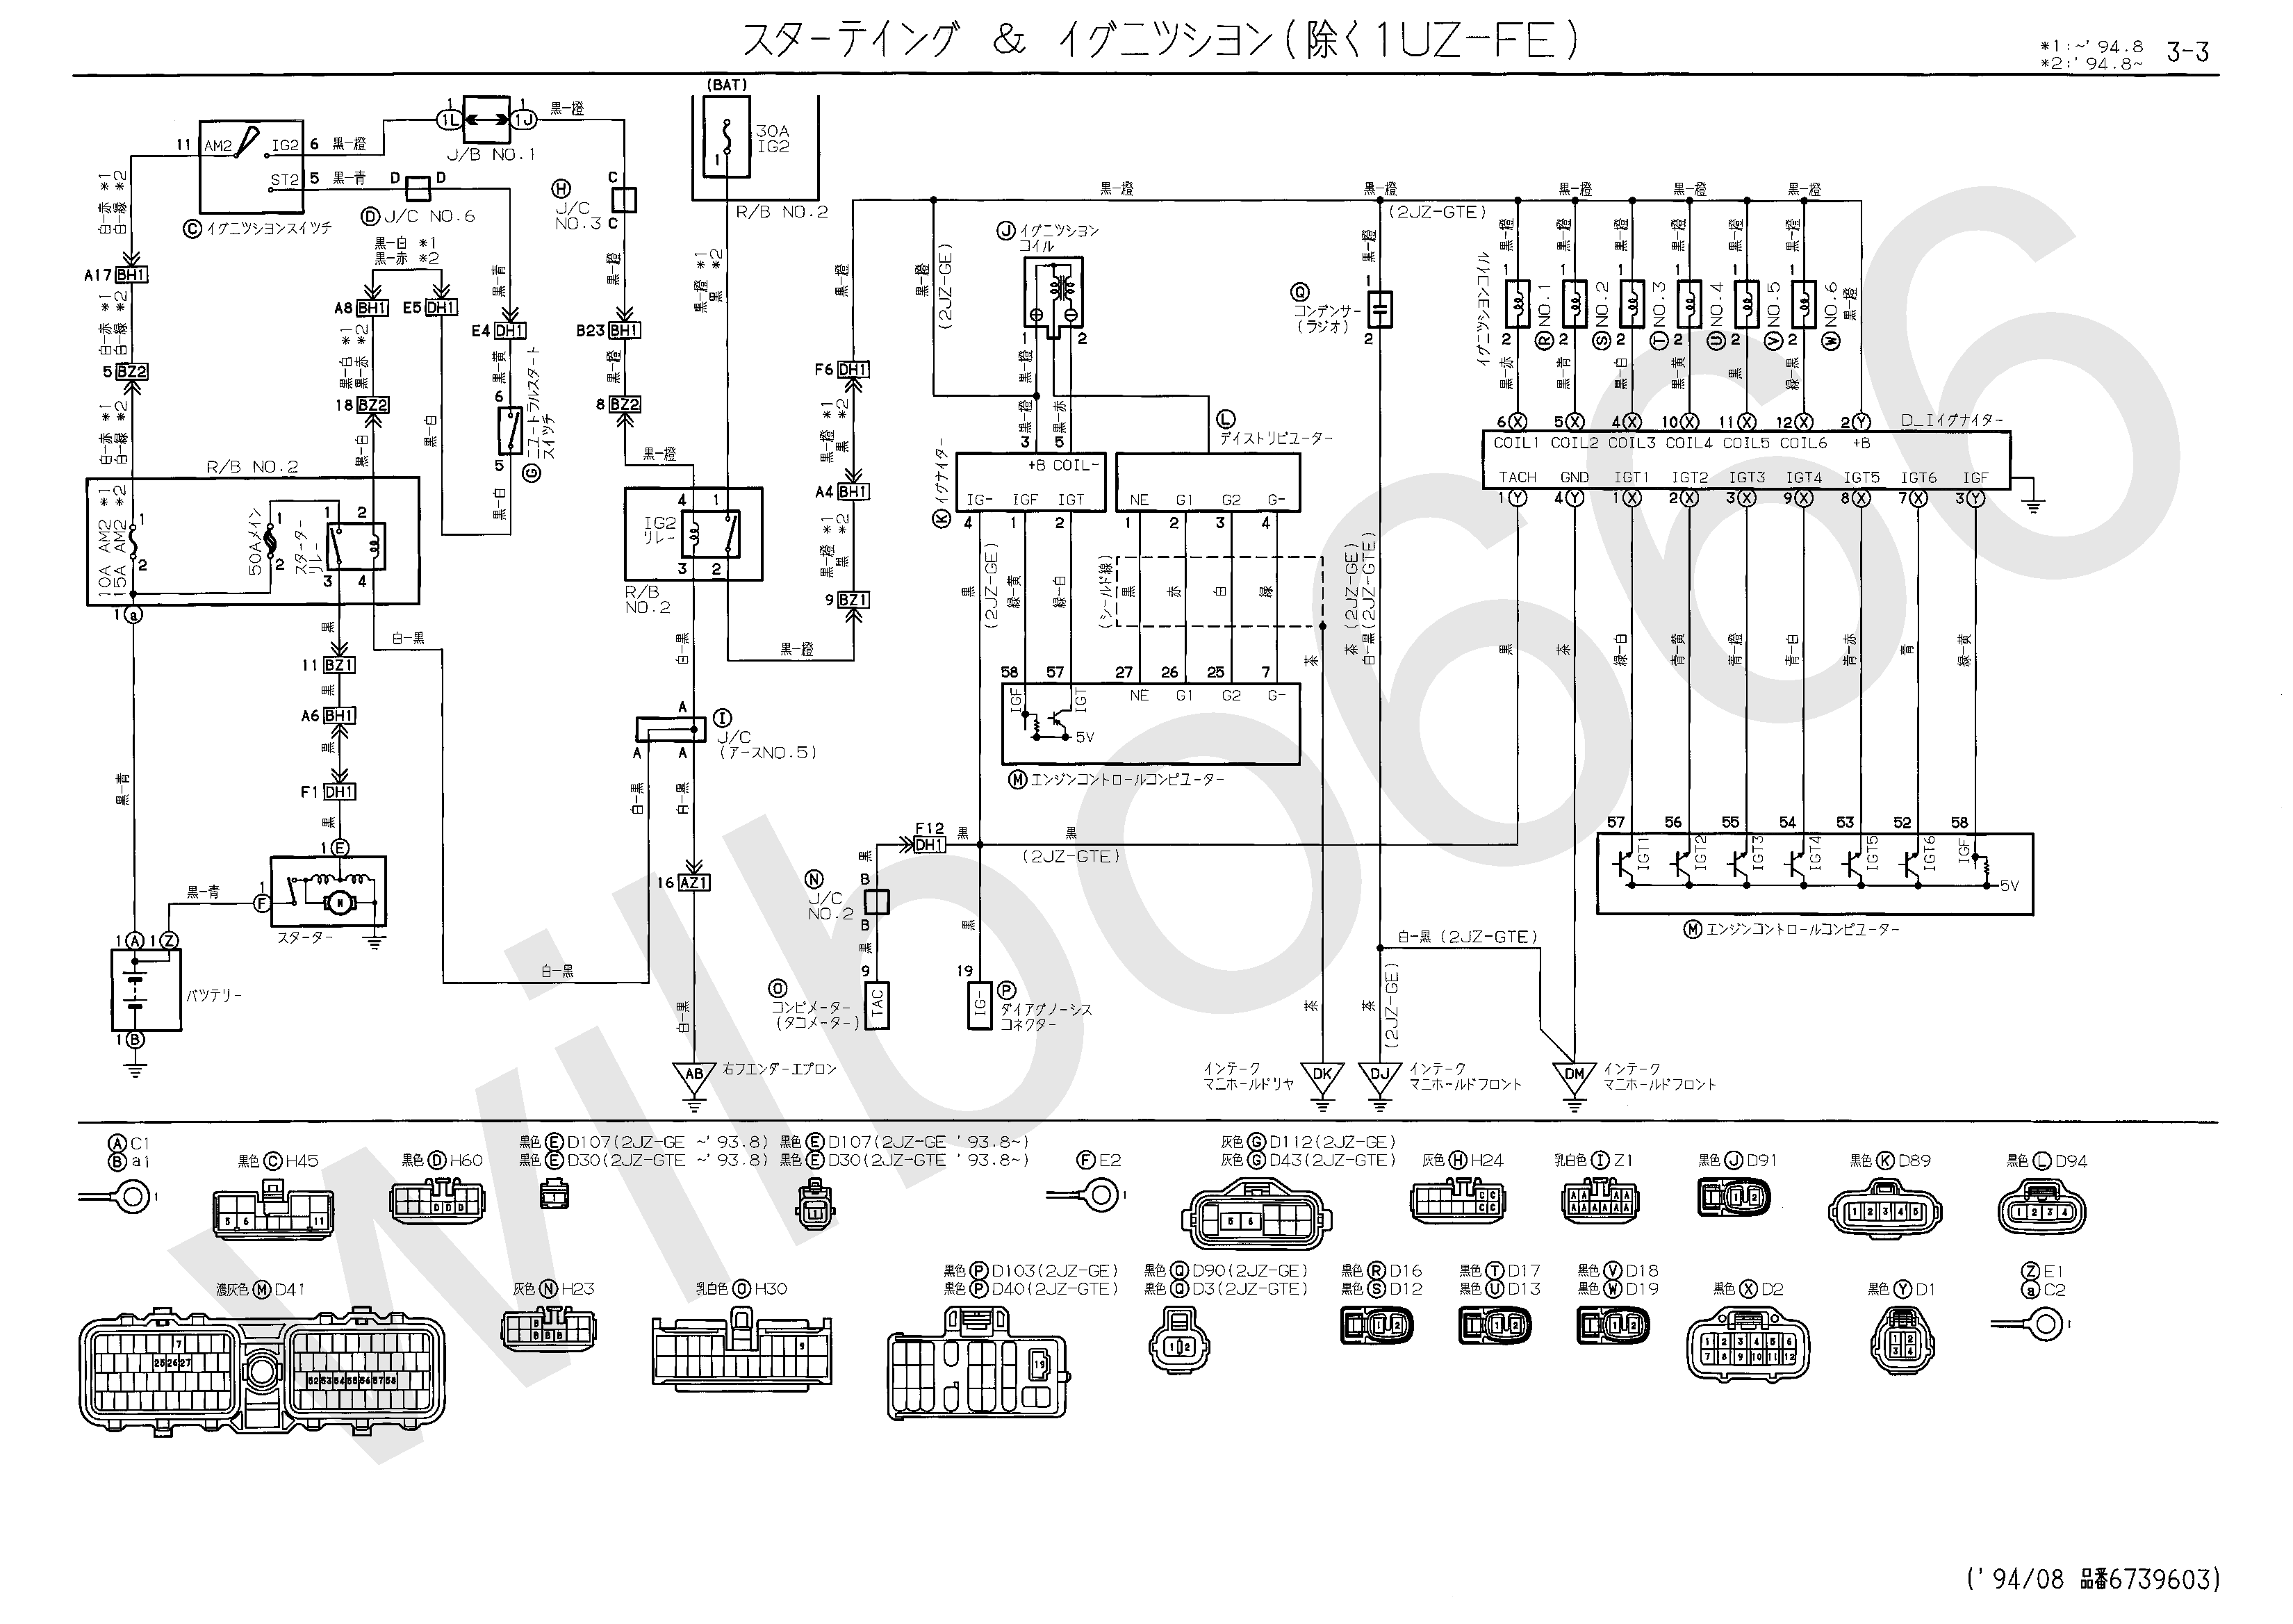 JZS14%23%2C UZS14%23 Electrical Wiring Diagram 6739604 3 3?resize\\\\\\\\\\\\\\\\\\\\\\\\\\\\\\\\\\\\\\\\\\\\\\\\\\\\\\\\\\\\\\\\\\\\\\\\\\\\\\\\\\\\\\\\\\\\\\\\\\\\\\\\\\\\\\\\\\\\\\\\\\\\\\\\\\\\\\\\\\\\\\\\\\\\\\\\\\\\\\\\\\\\\\\\\\\\\\\\\\\\\\\\\\\\\\\\\\\\\\\\\\\\\\\\\\\\\\\\\\\\\\\\\\\\\\\\\\\\\\\\\\\\\\\\\\\\\\\\\\\\\\\\\\\\\\\\\\\\\\\\\\\\\\\\\\\\\\\\\\\\\\\\\\\\\\\\\\\\\\\\\\\\\\\\\\\\\\\\\\\\\\\\\\\\\\\\\\\\\\\\\\\\\\\\\\\\\\\\\\\\\\\\\\\\\\\\\\\\\\\\\\\\\\\\\\\\\\\\\\\\\\\\\\\\\\\\\\\\\\\\\\\\\\\\\=665%2C471 rb26 wiring diagram rb26 wiring harness diagram \u2022 wiring diagrams little flying fighter alarm wiring diagram at bayanpartner.co